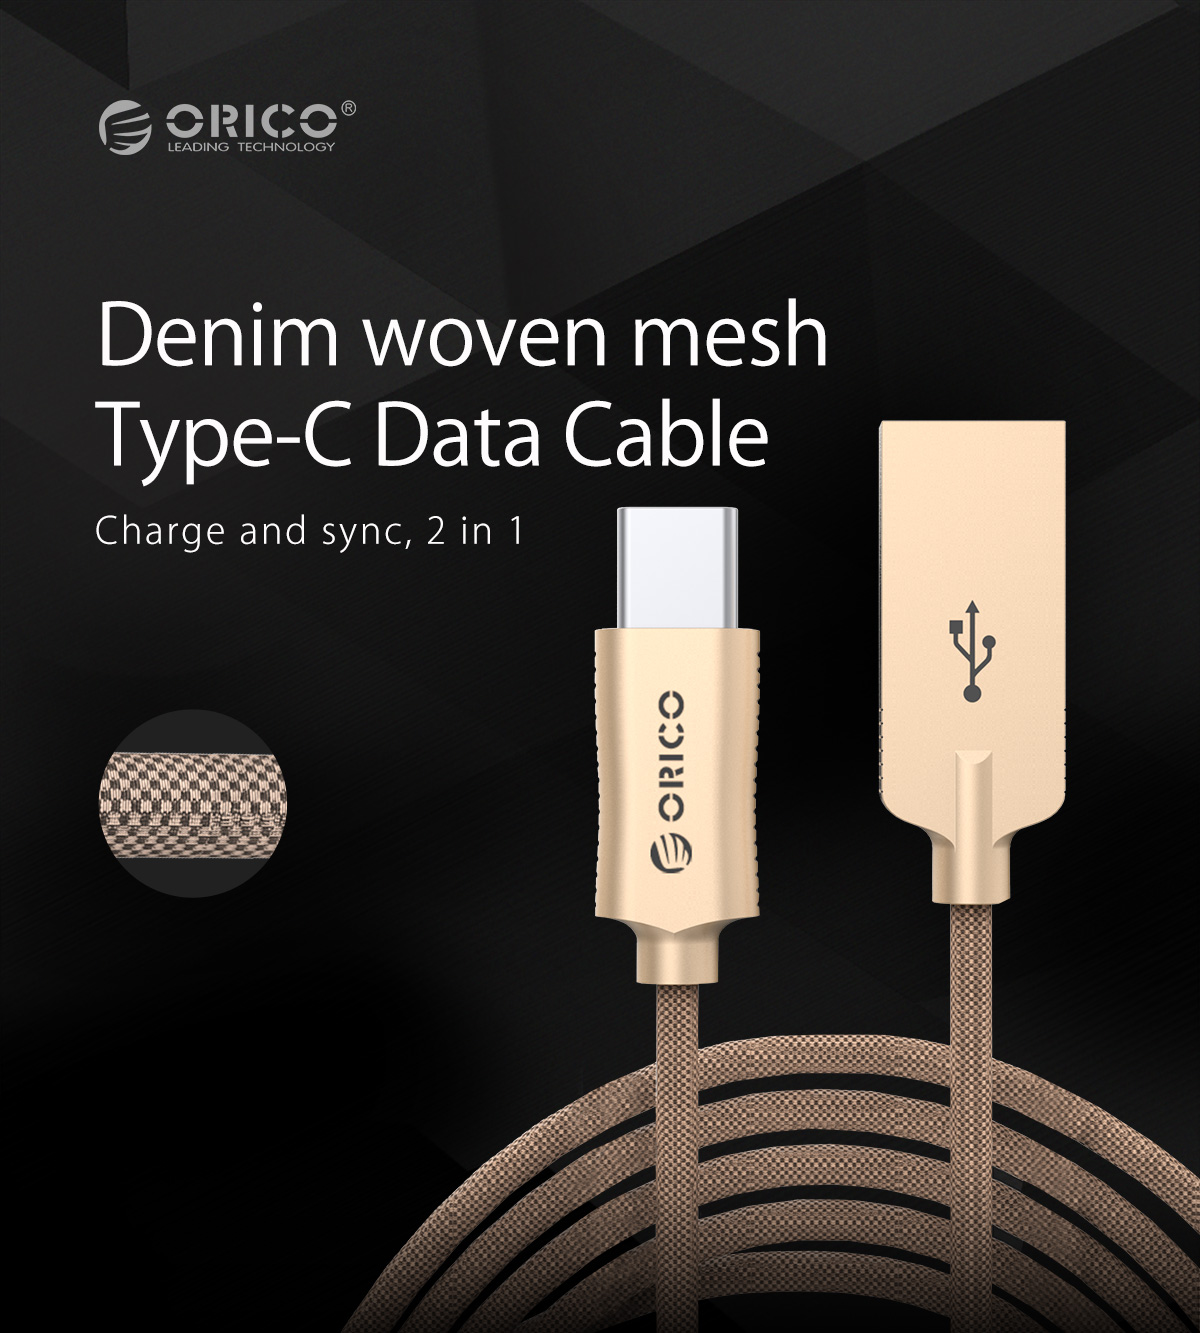 ORICO Type-C Data Cable